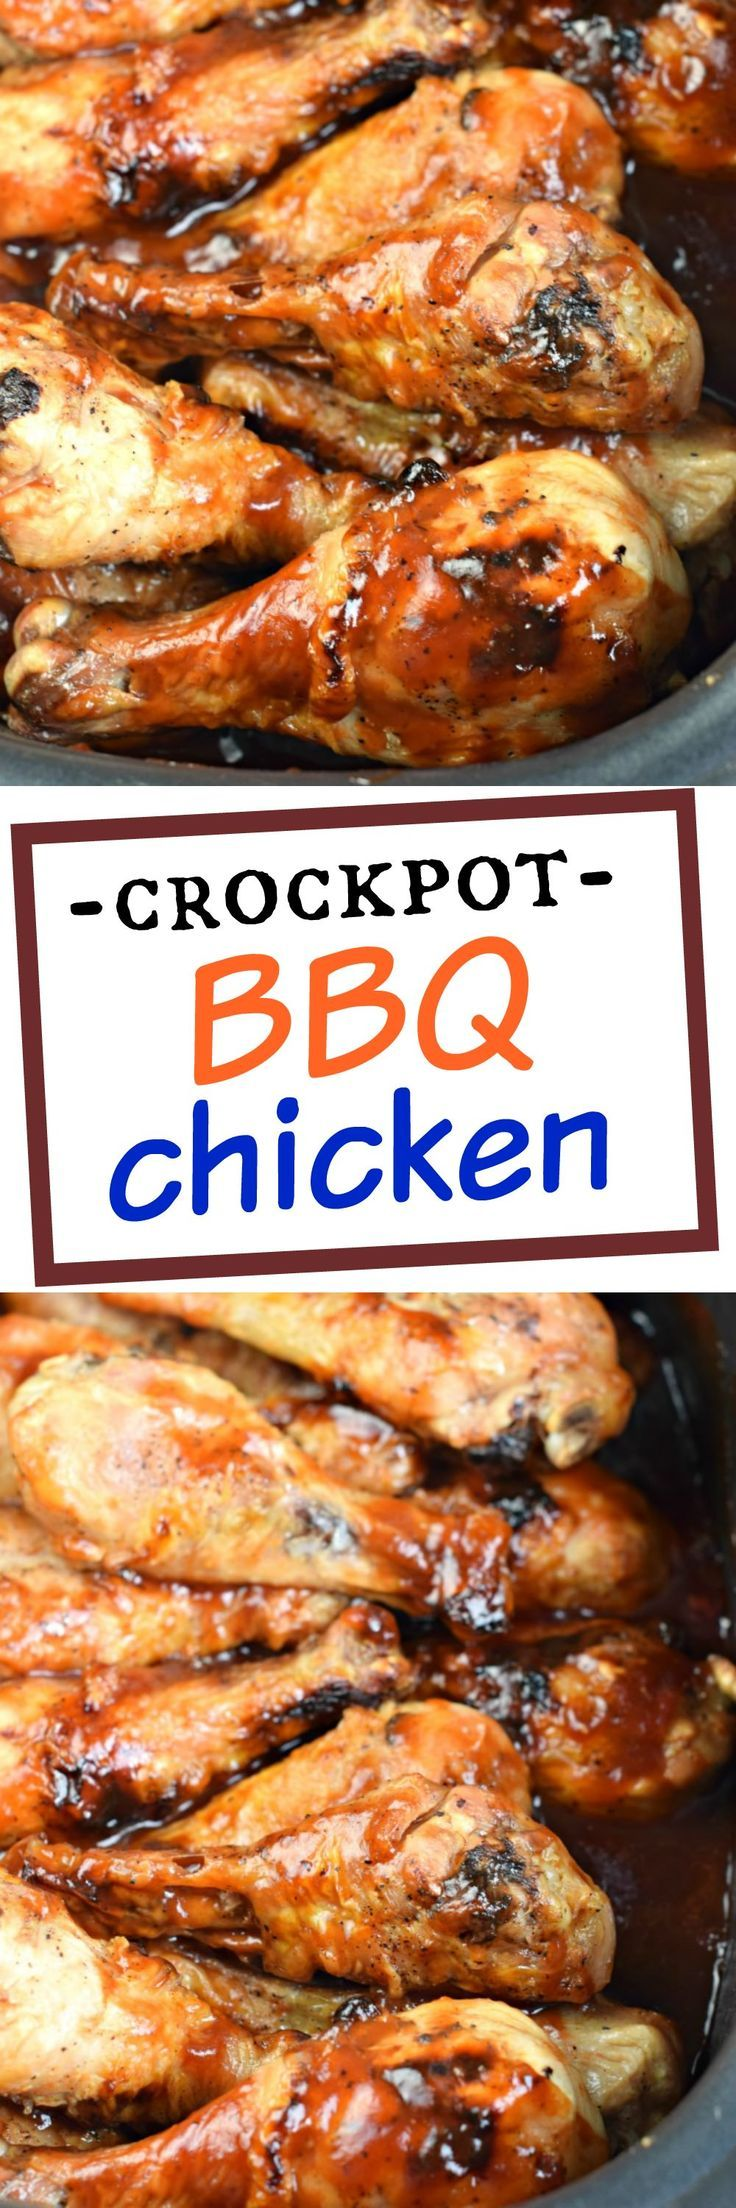 Make juicy, sweet and tangy chicken in your crockpot with this easy Slow Cooker BBQ Chicken recipe!